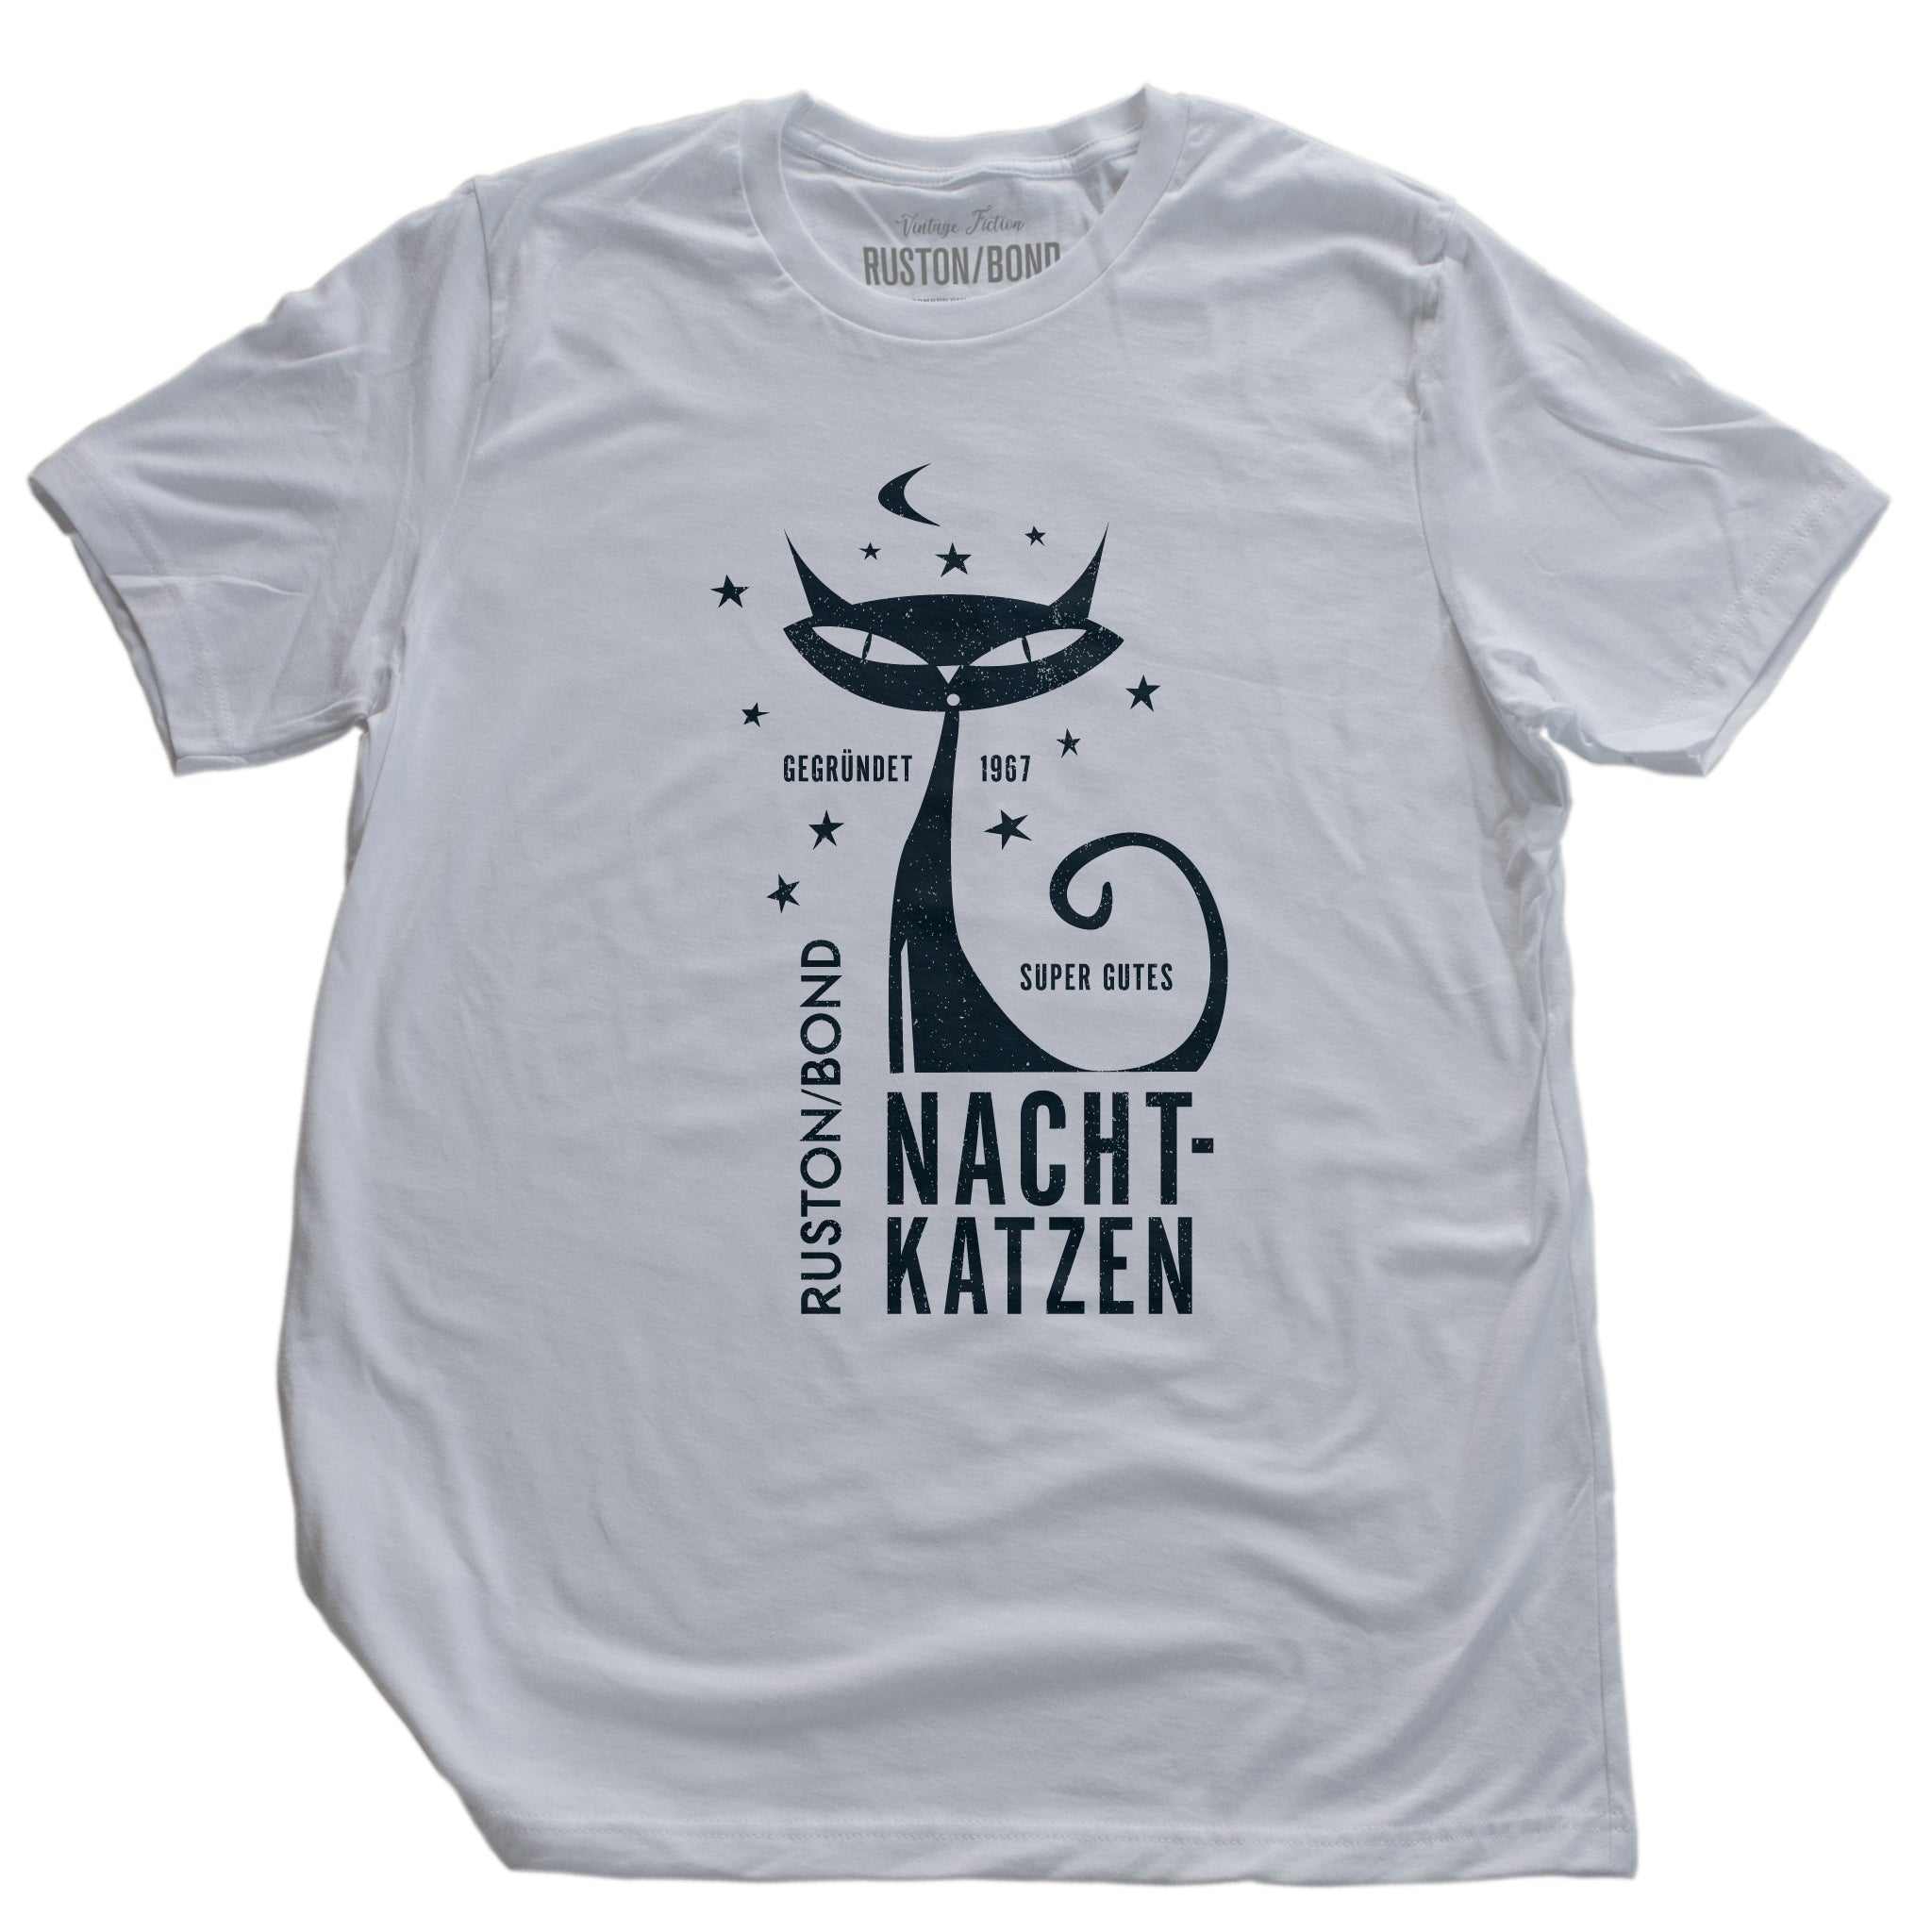 "A vintage-inspired retro design t-shirt in classic White, featuring the image of a stylized cat graphic among stars, and the German text ""NACHTKATZEN, Super Gutes"" — translating to ""Night Cats, super good"" and the year 1967, with the Ruston/Bond logo beneath. From wolfsaint.net"